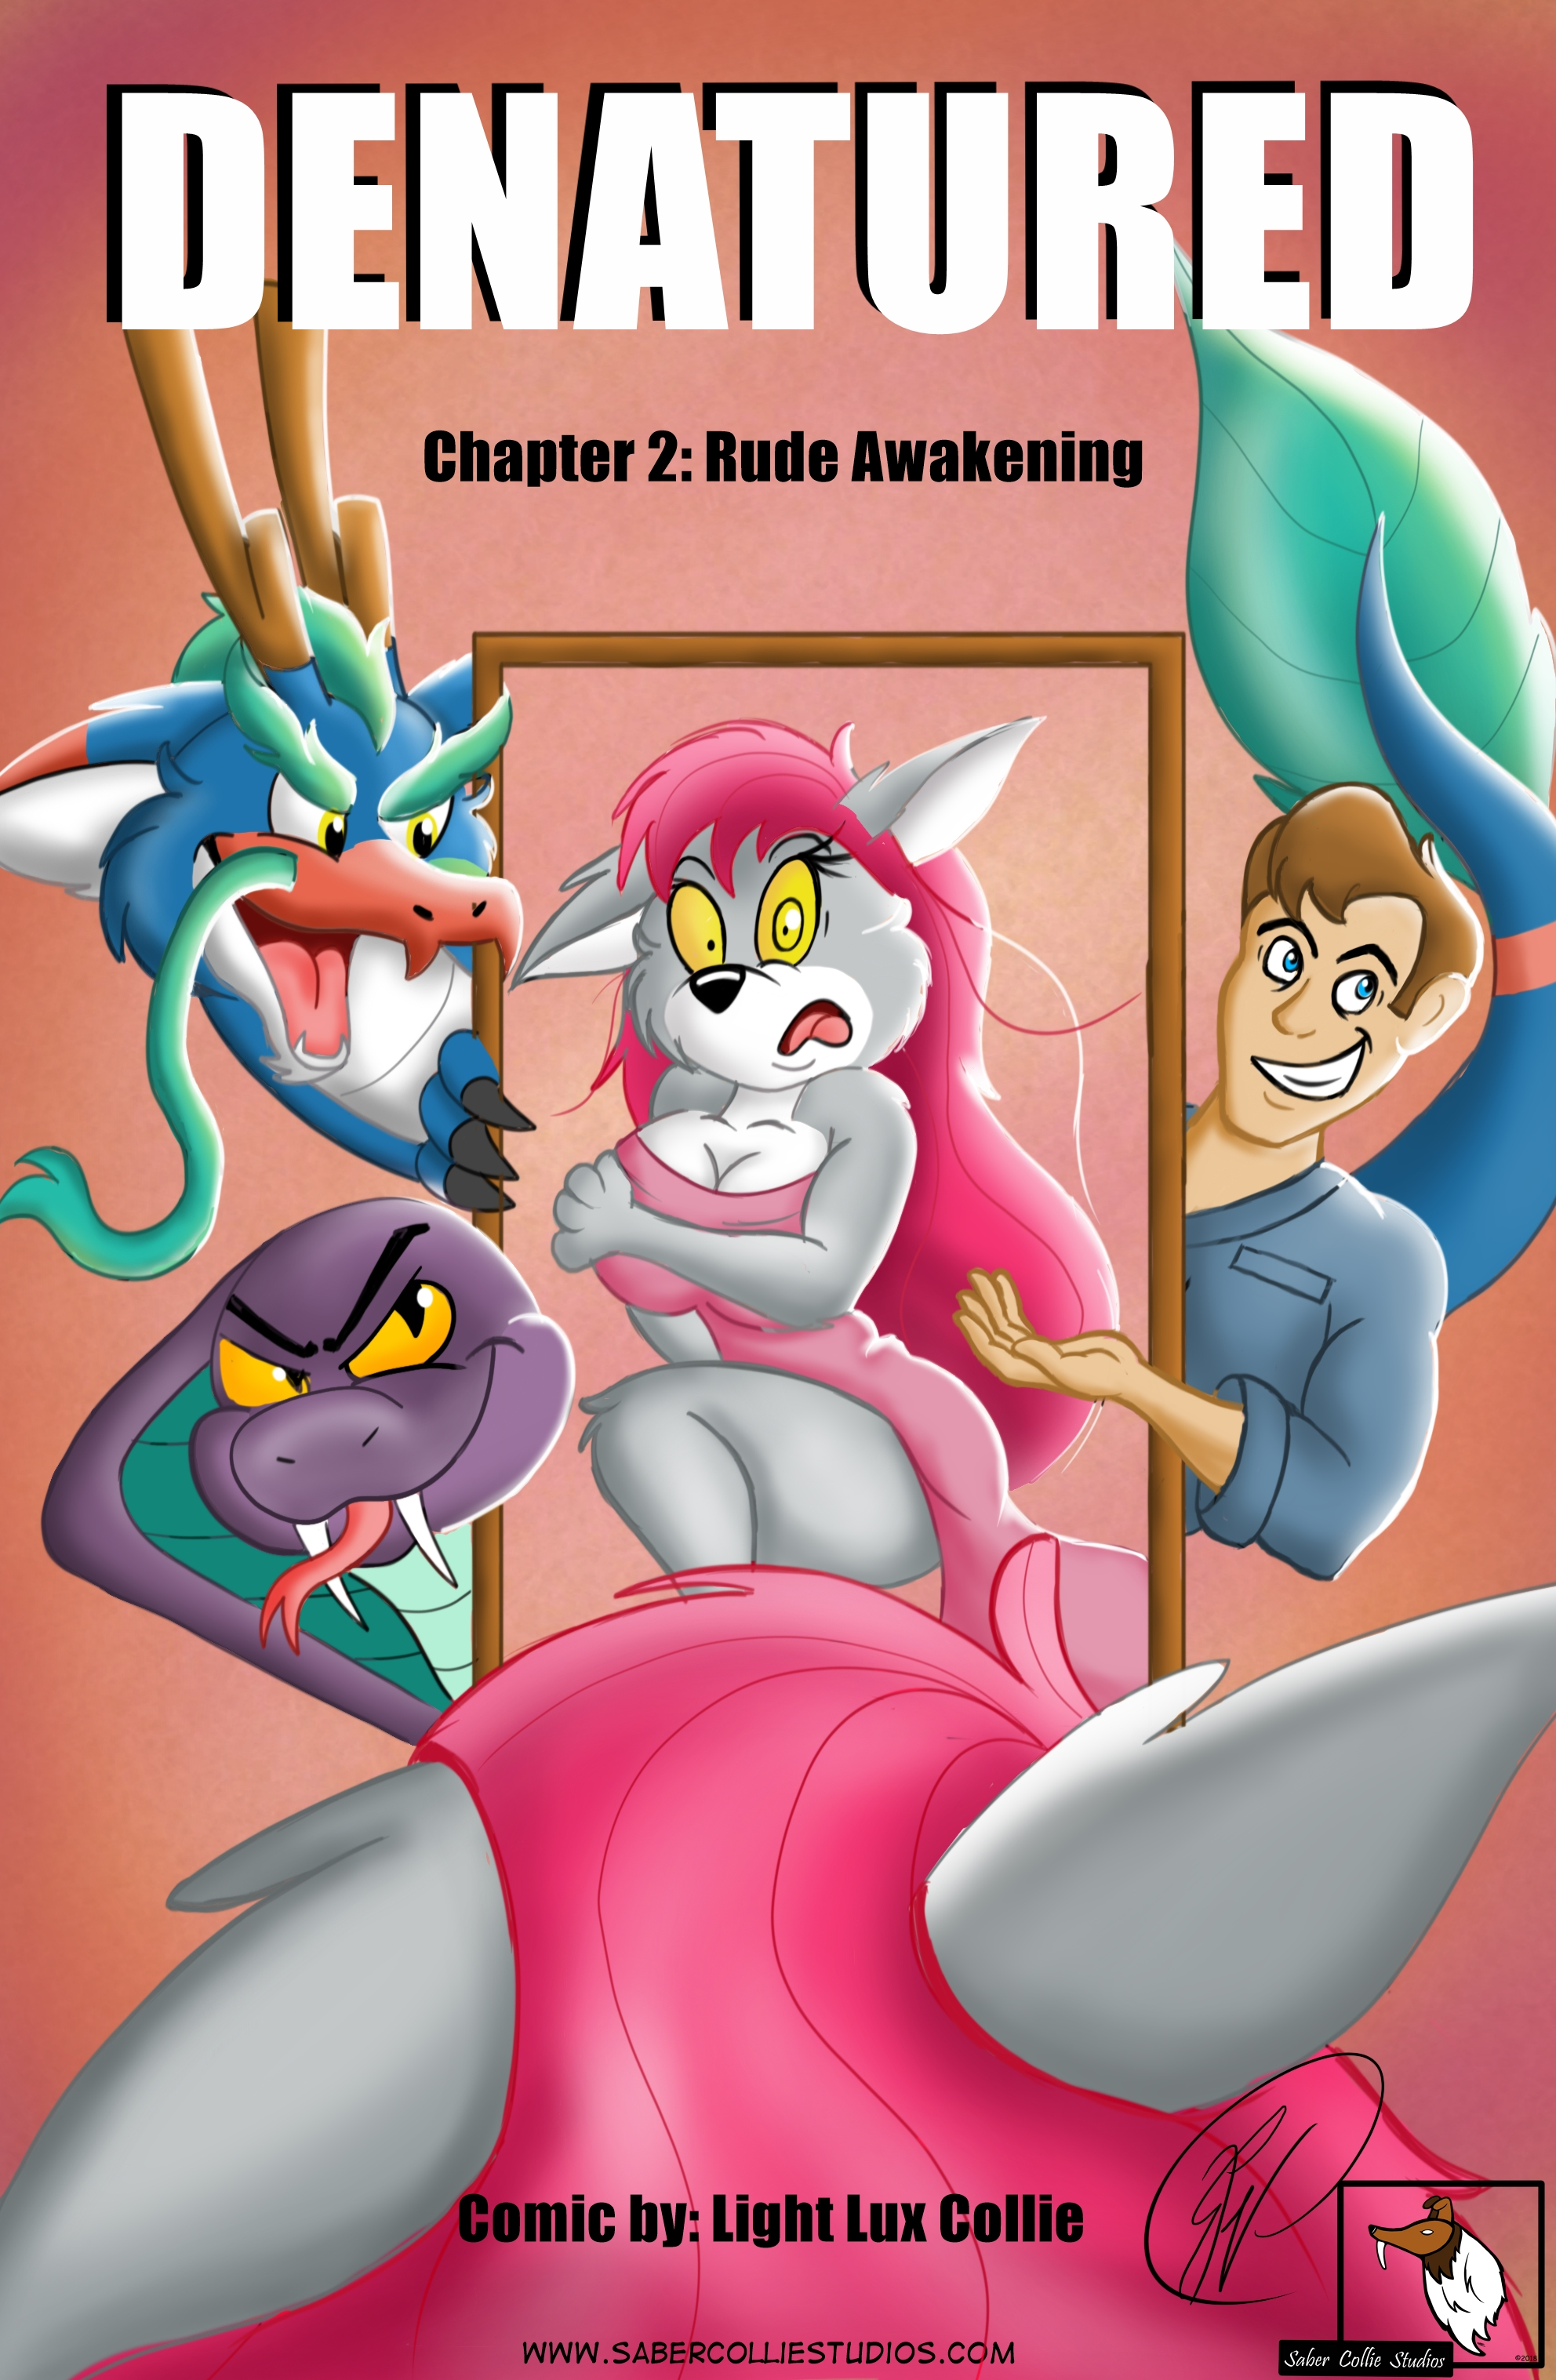 denatured chapter 2 cover page.jpg